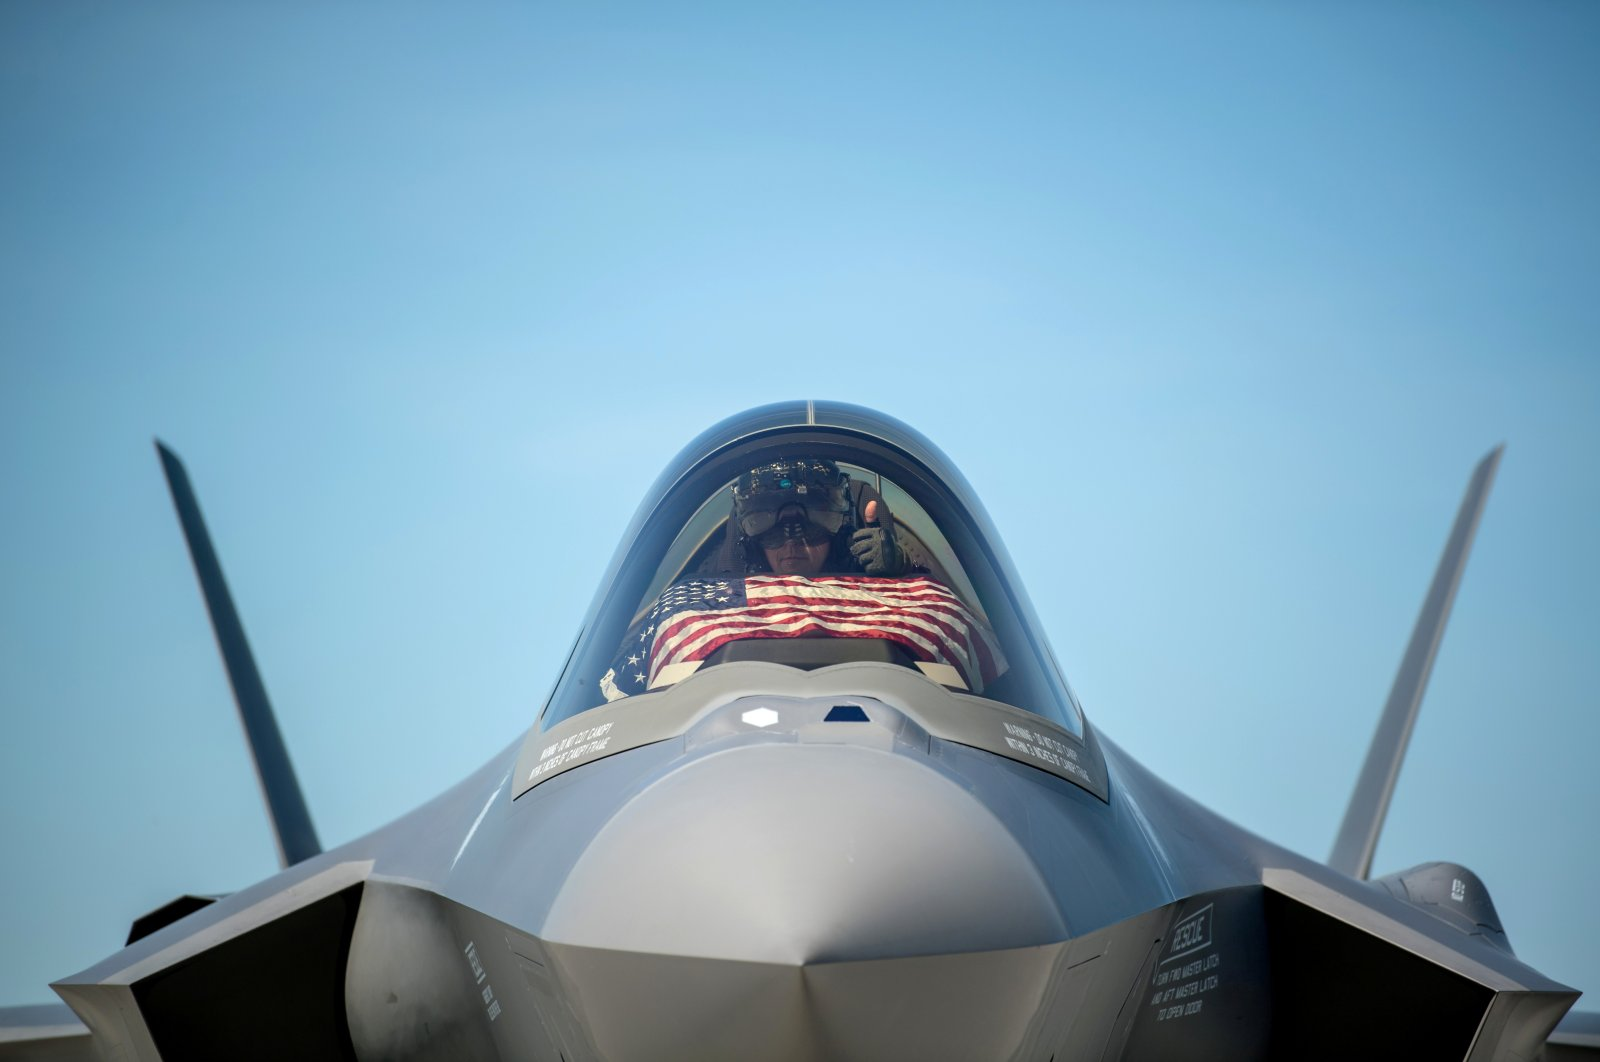 An F-35 pilot prepares for takeoff from the Vermont Air National Guard Base with the flag of the United States, before a flyover in South Burlington, Vermont, U.S. May 22, 2020. (Reuters Photo)